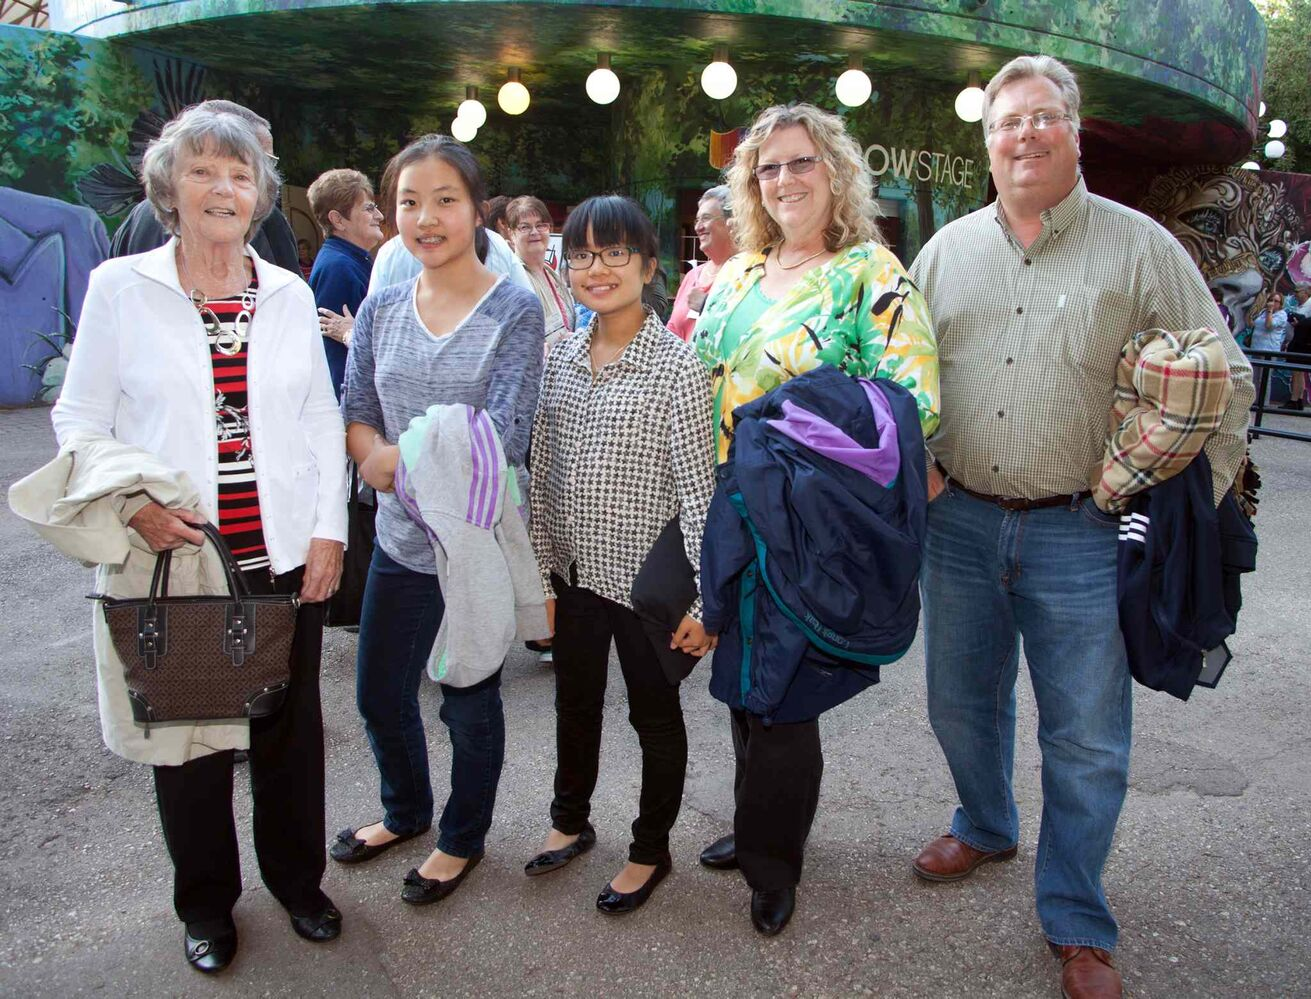 Sister Act, based on the 1992 Whoopi Goldberg movie, is at Rainbow Stage until Sept. 1, 2015. Taking in the show were Gail Smith (from left), Hannah Wei, Lauren McIlroy, Cheryl Smith and Jim McIlroy.  (JOHN JOHNSTON / WINNIPEG FREE PRESS)